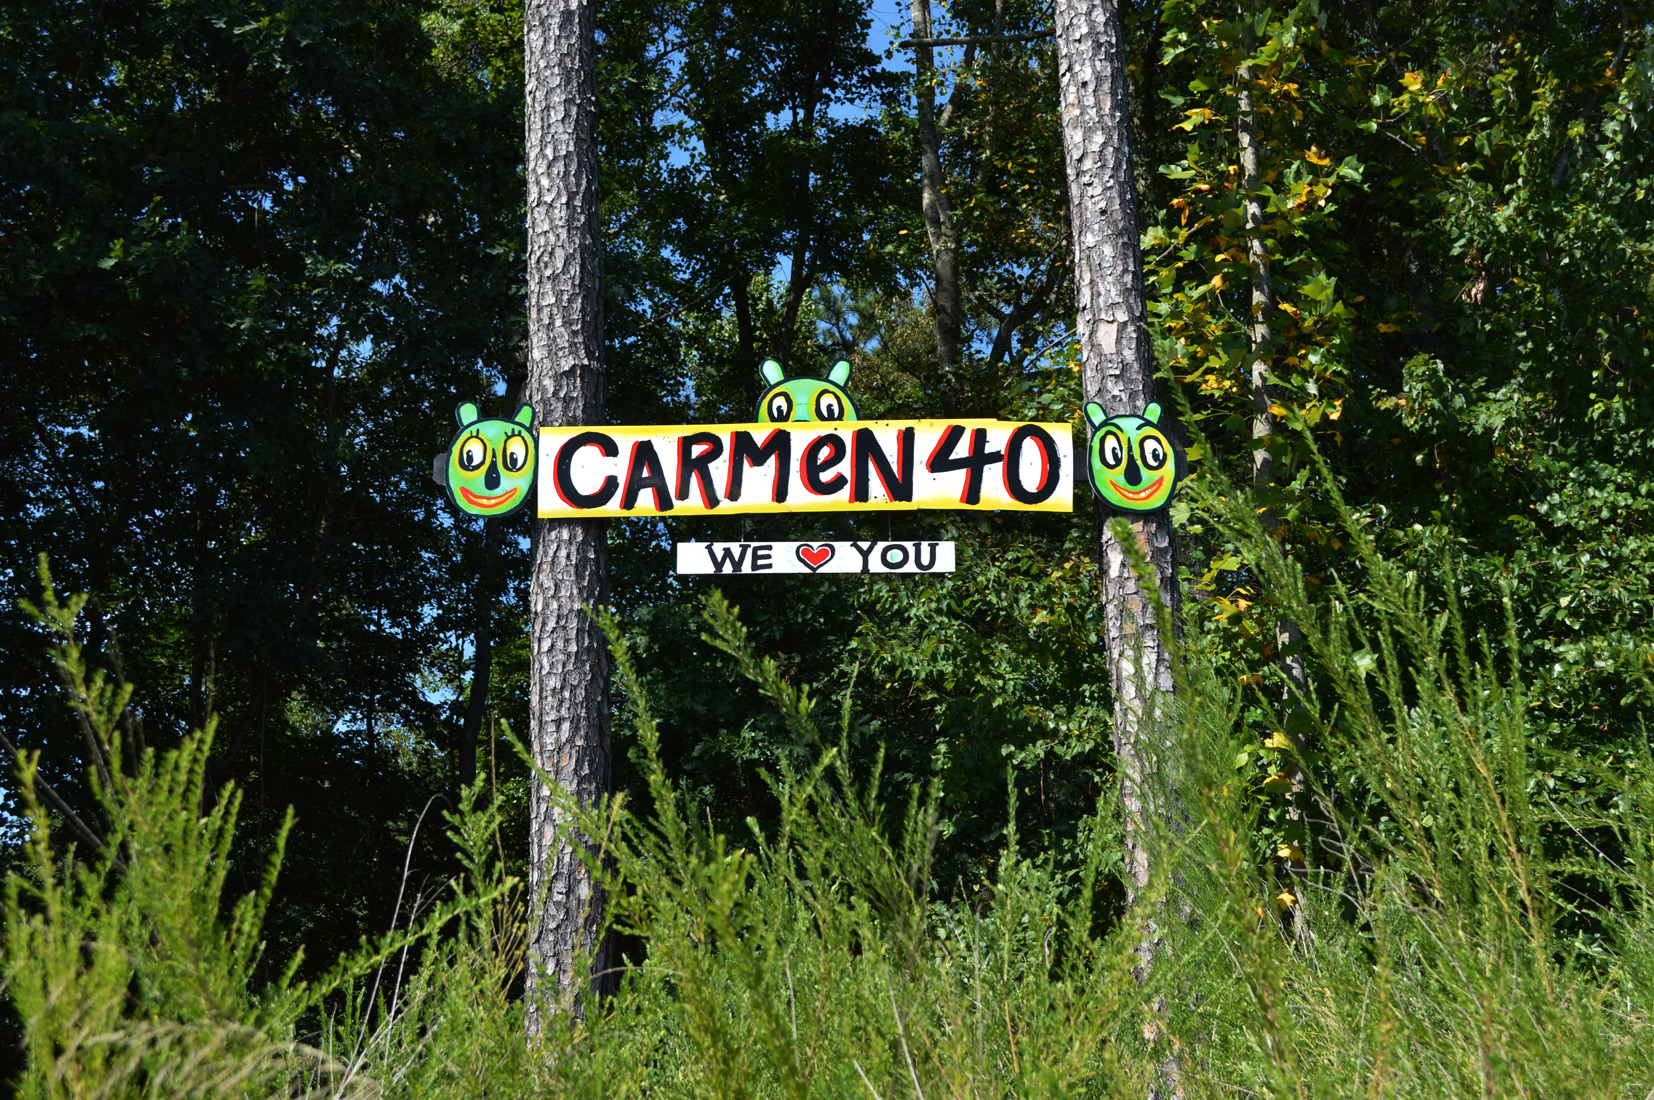 carmen40 streetfolk sign blackcattips - 3 folk art roadside georgia